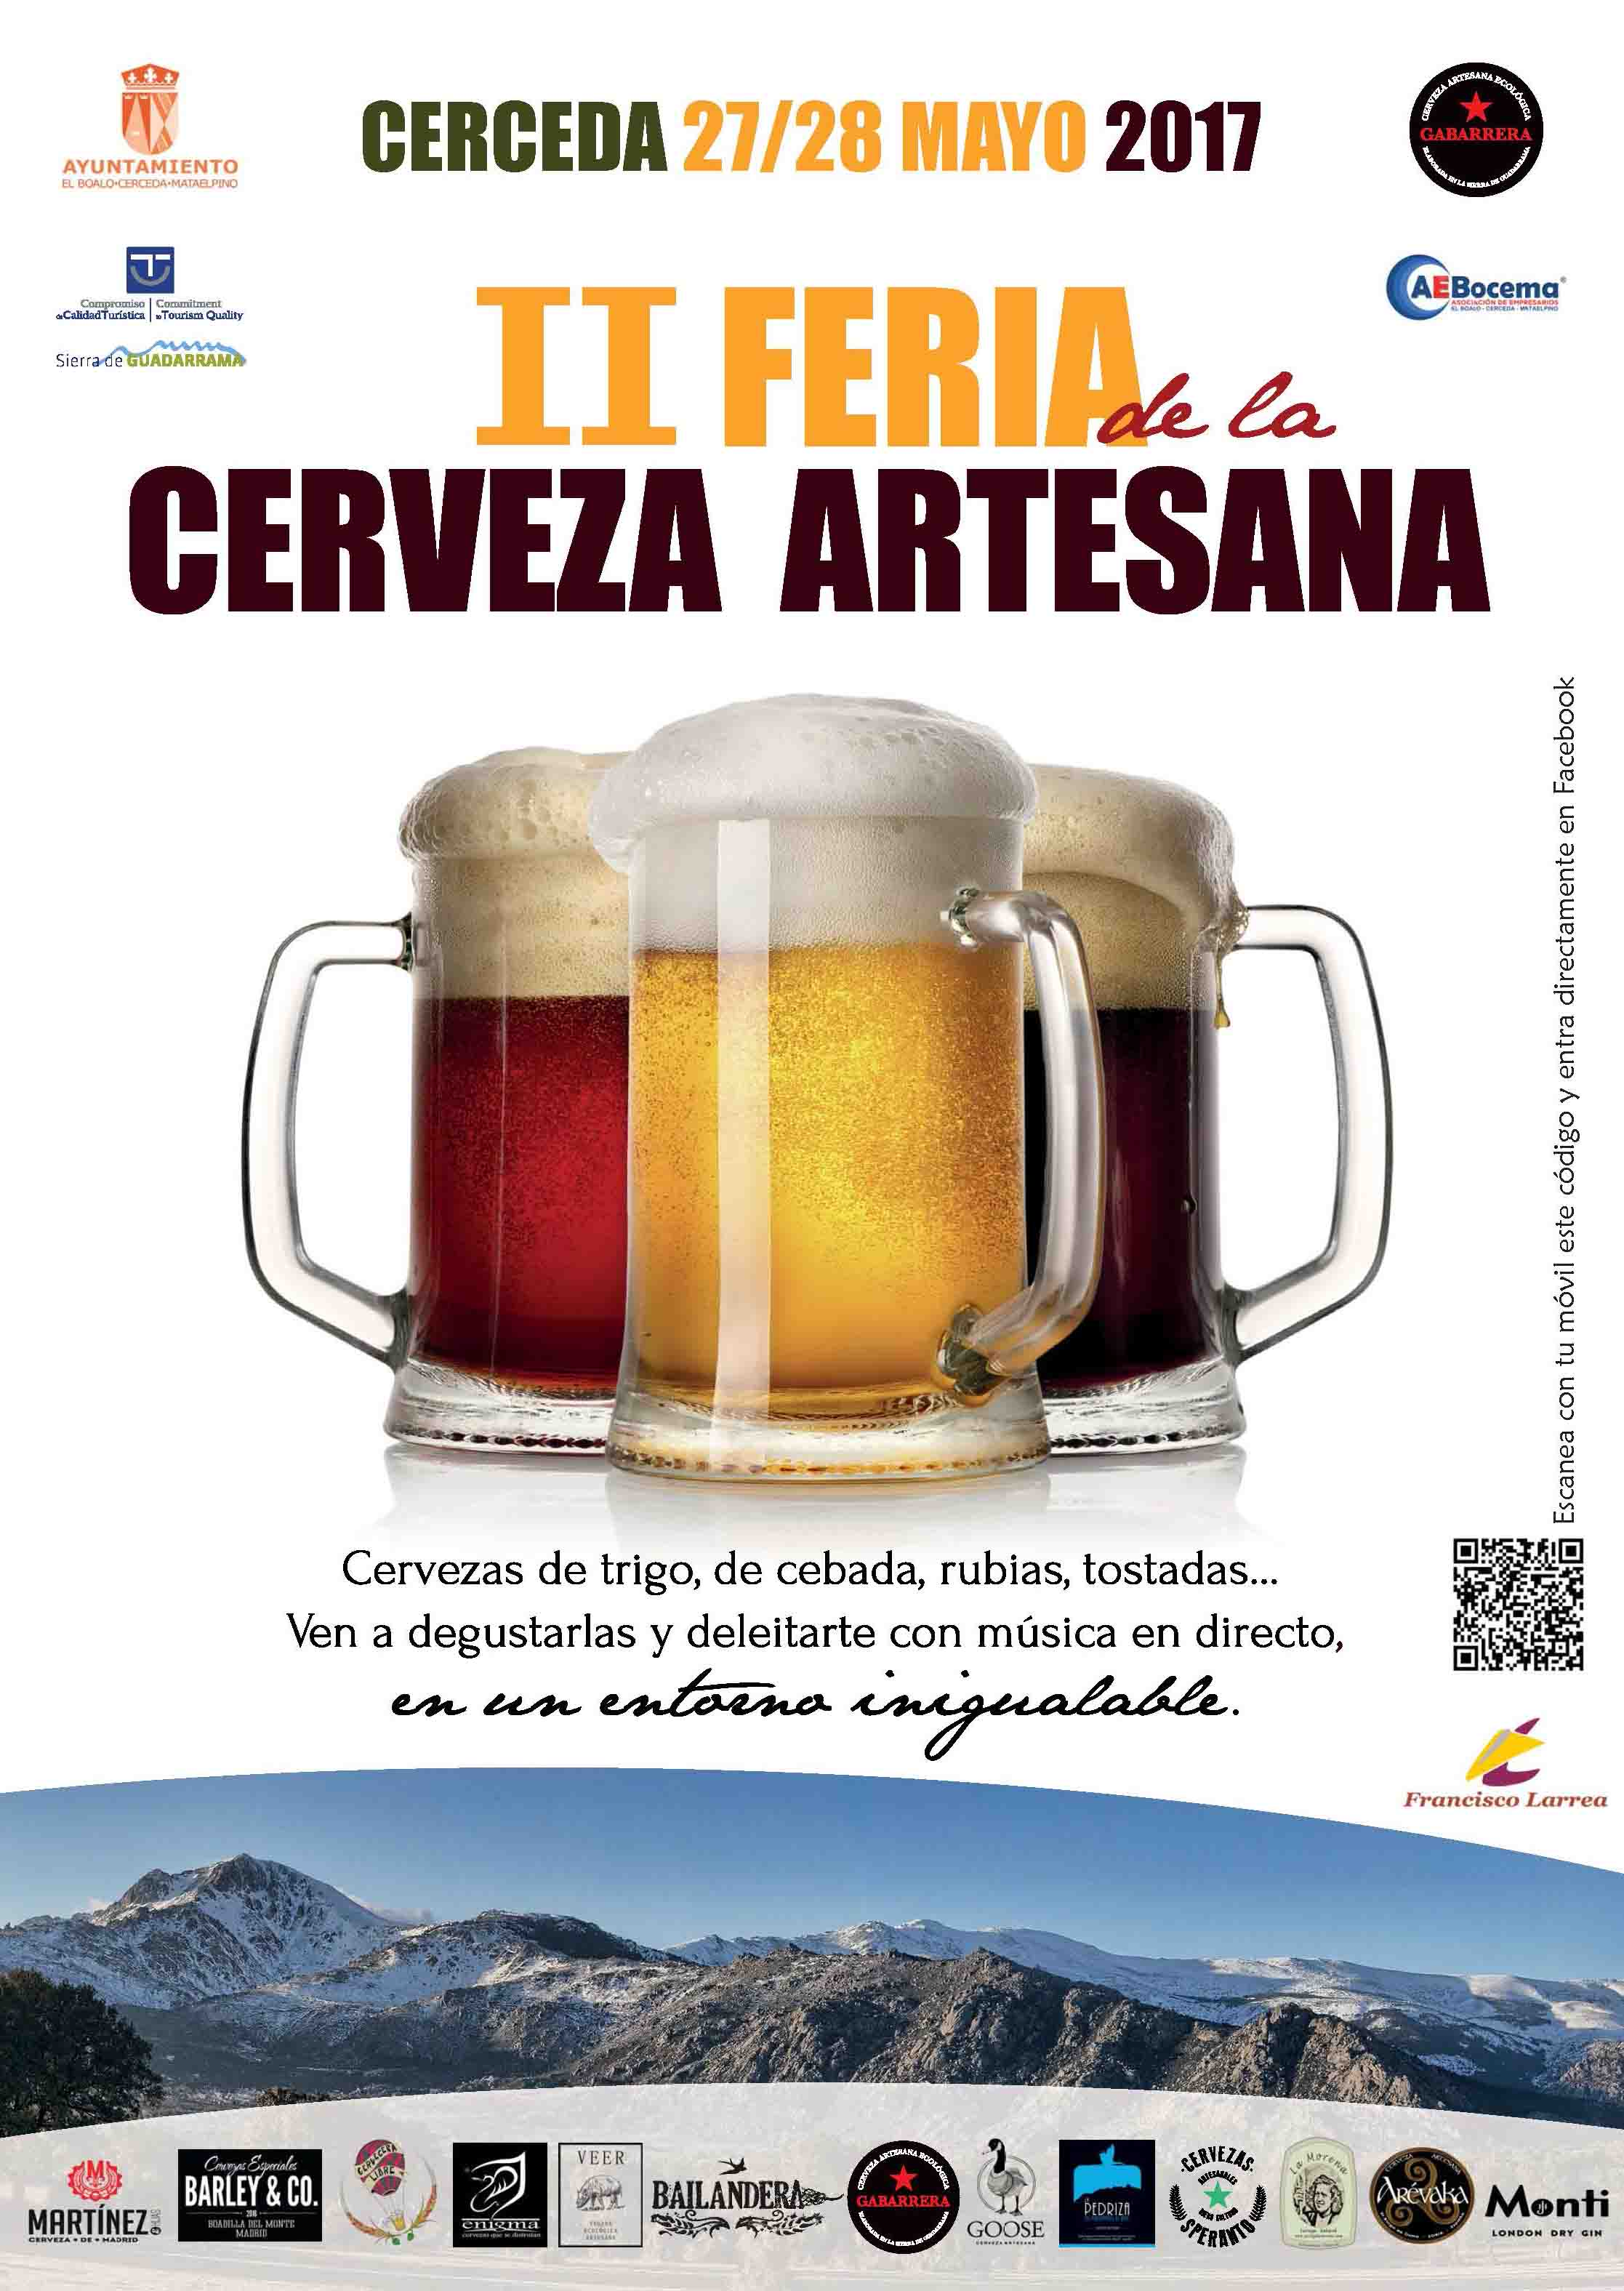 II Feria de la Cerveza Artesana de Cerceda